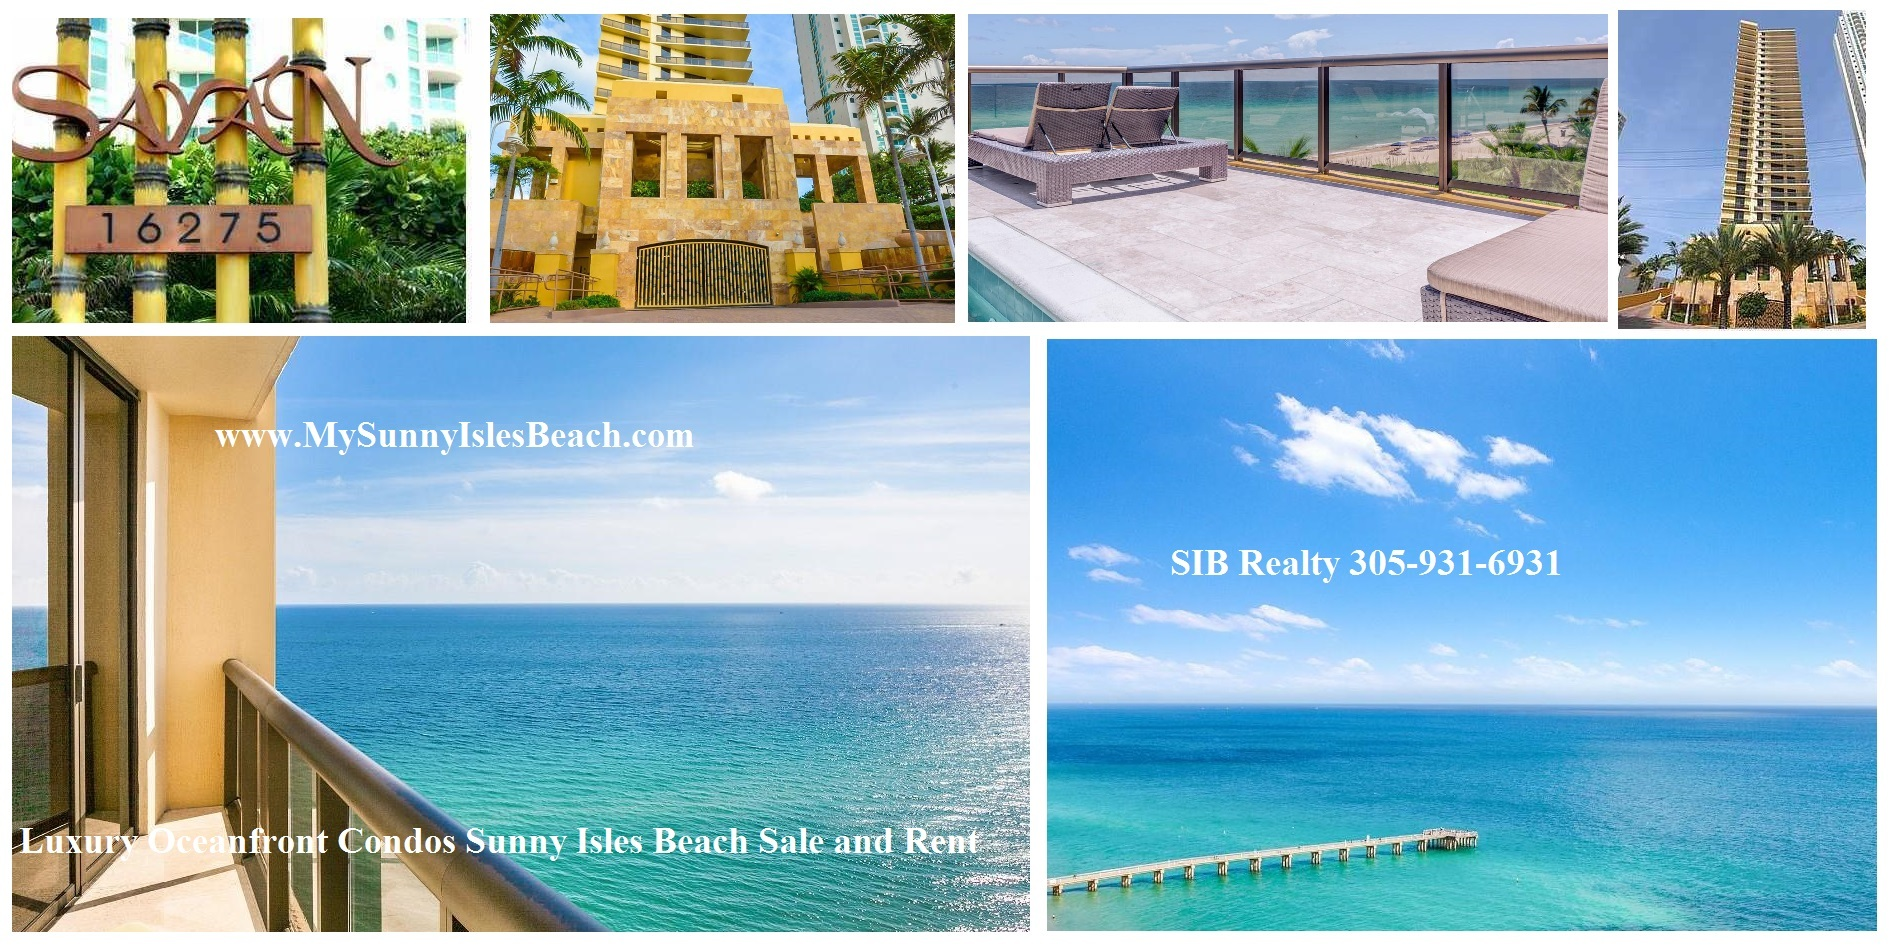 Sayan Sunny Isles Beach Condo For Sale with SIB Realty